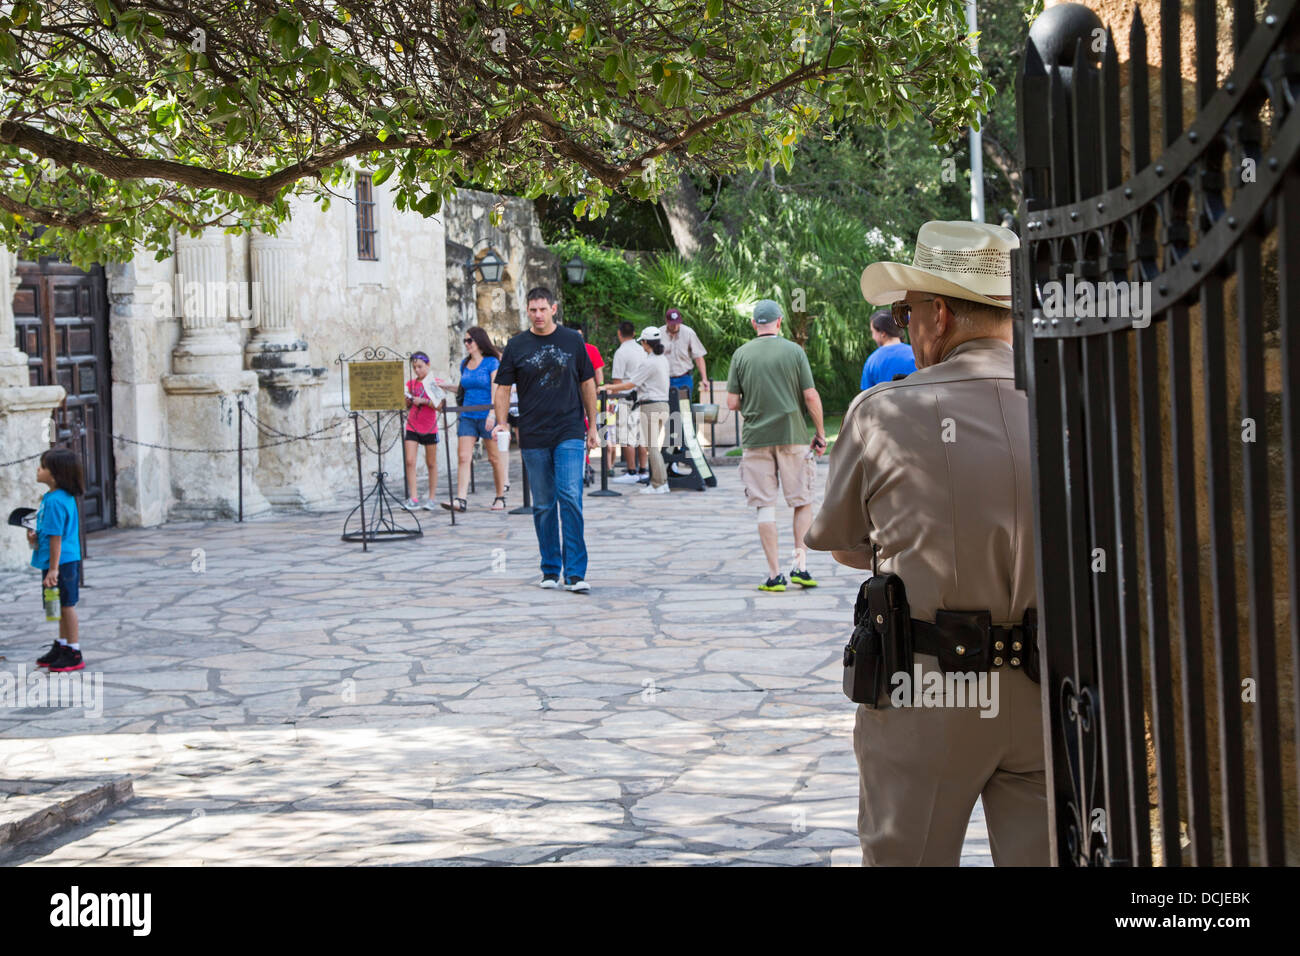 A guard watches visitors to the Alamo - Stock Image